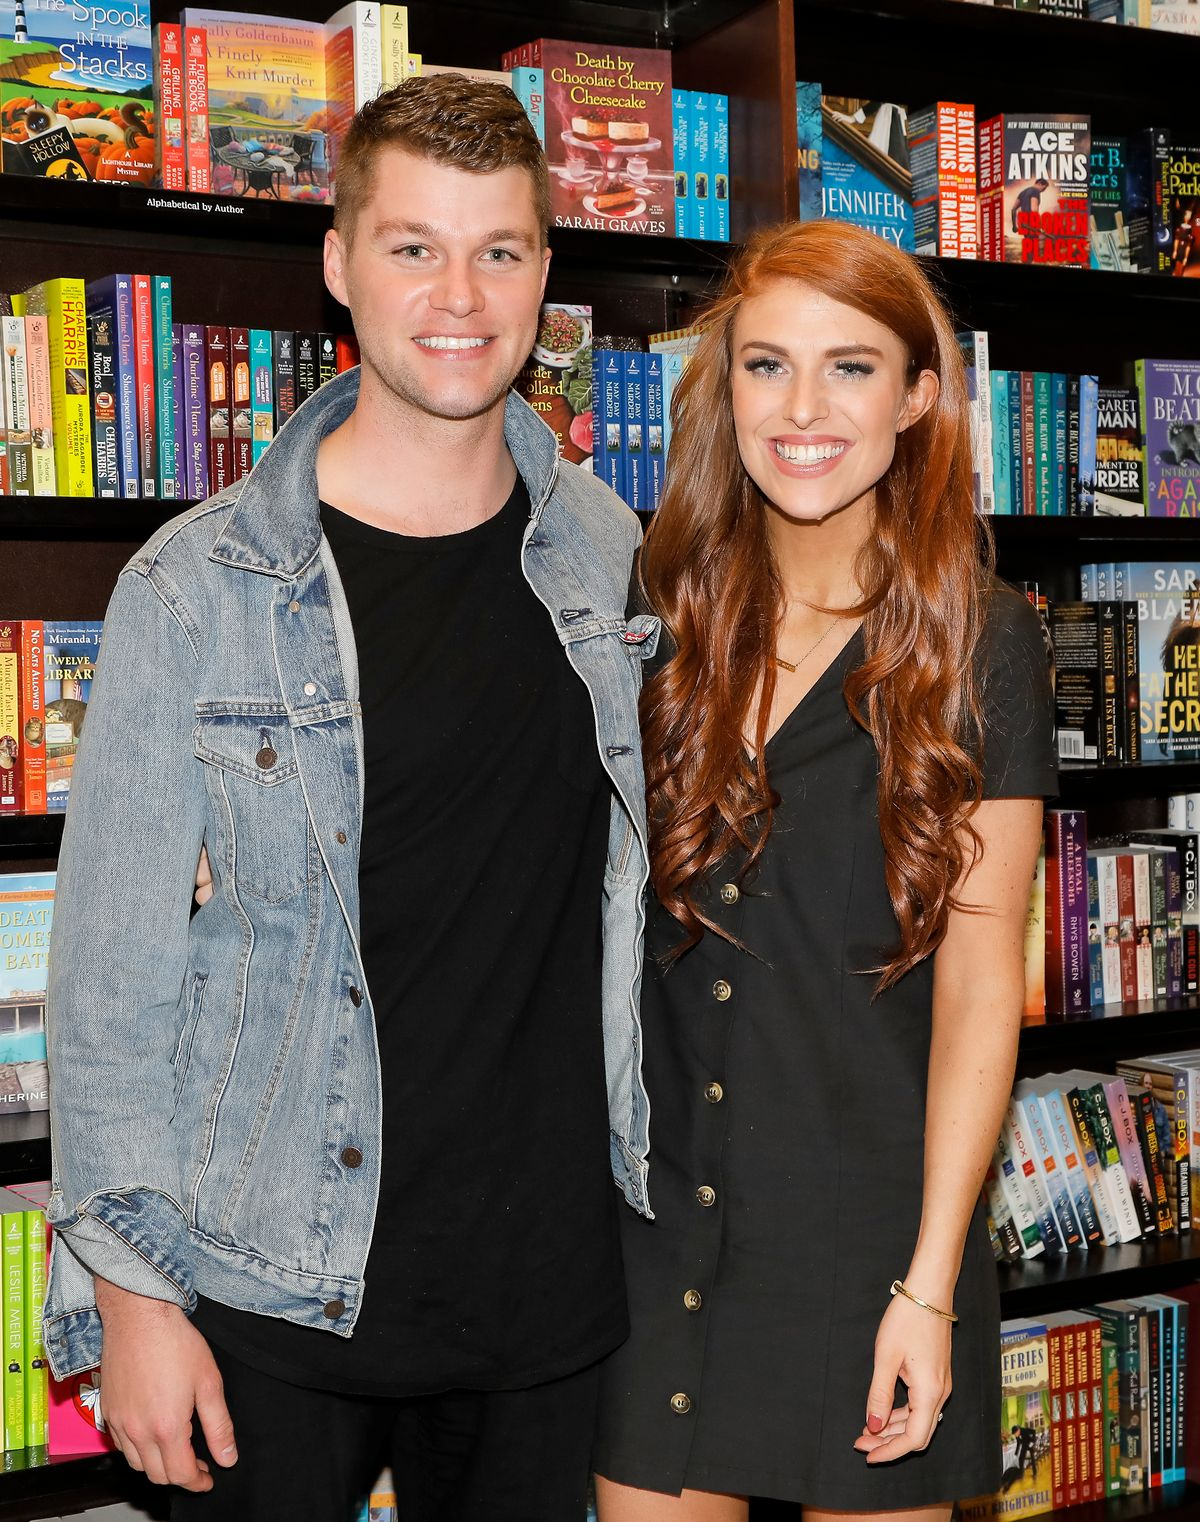 """Jeremyand Audrey Roloff celebrate their new book """"A Love Letter Life""""at Barnes & Nobleon April 10, 2019, in Los Angeles, California 